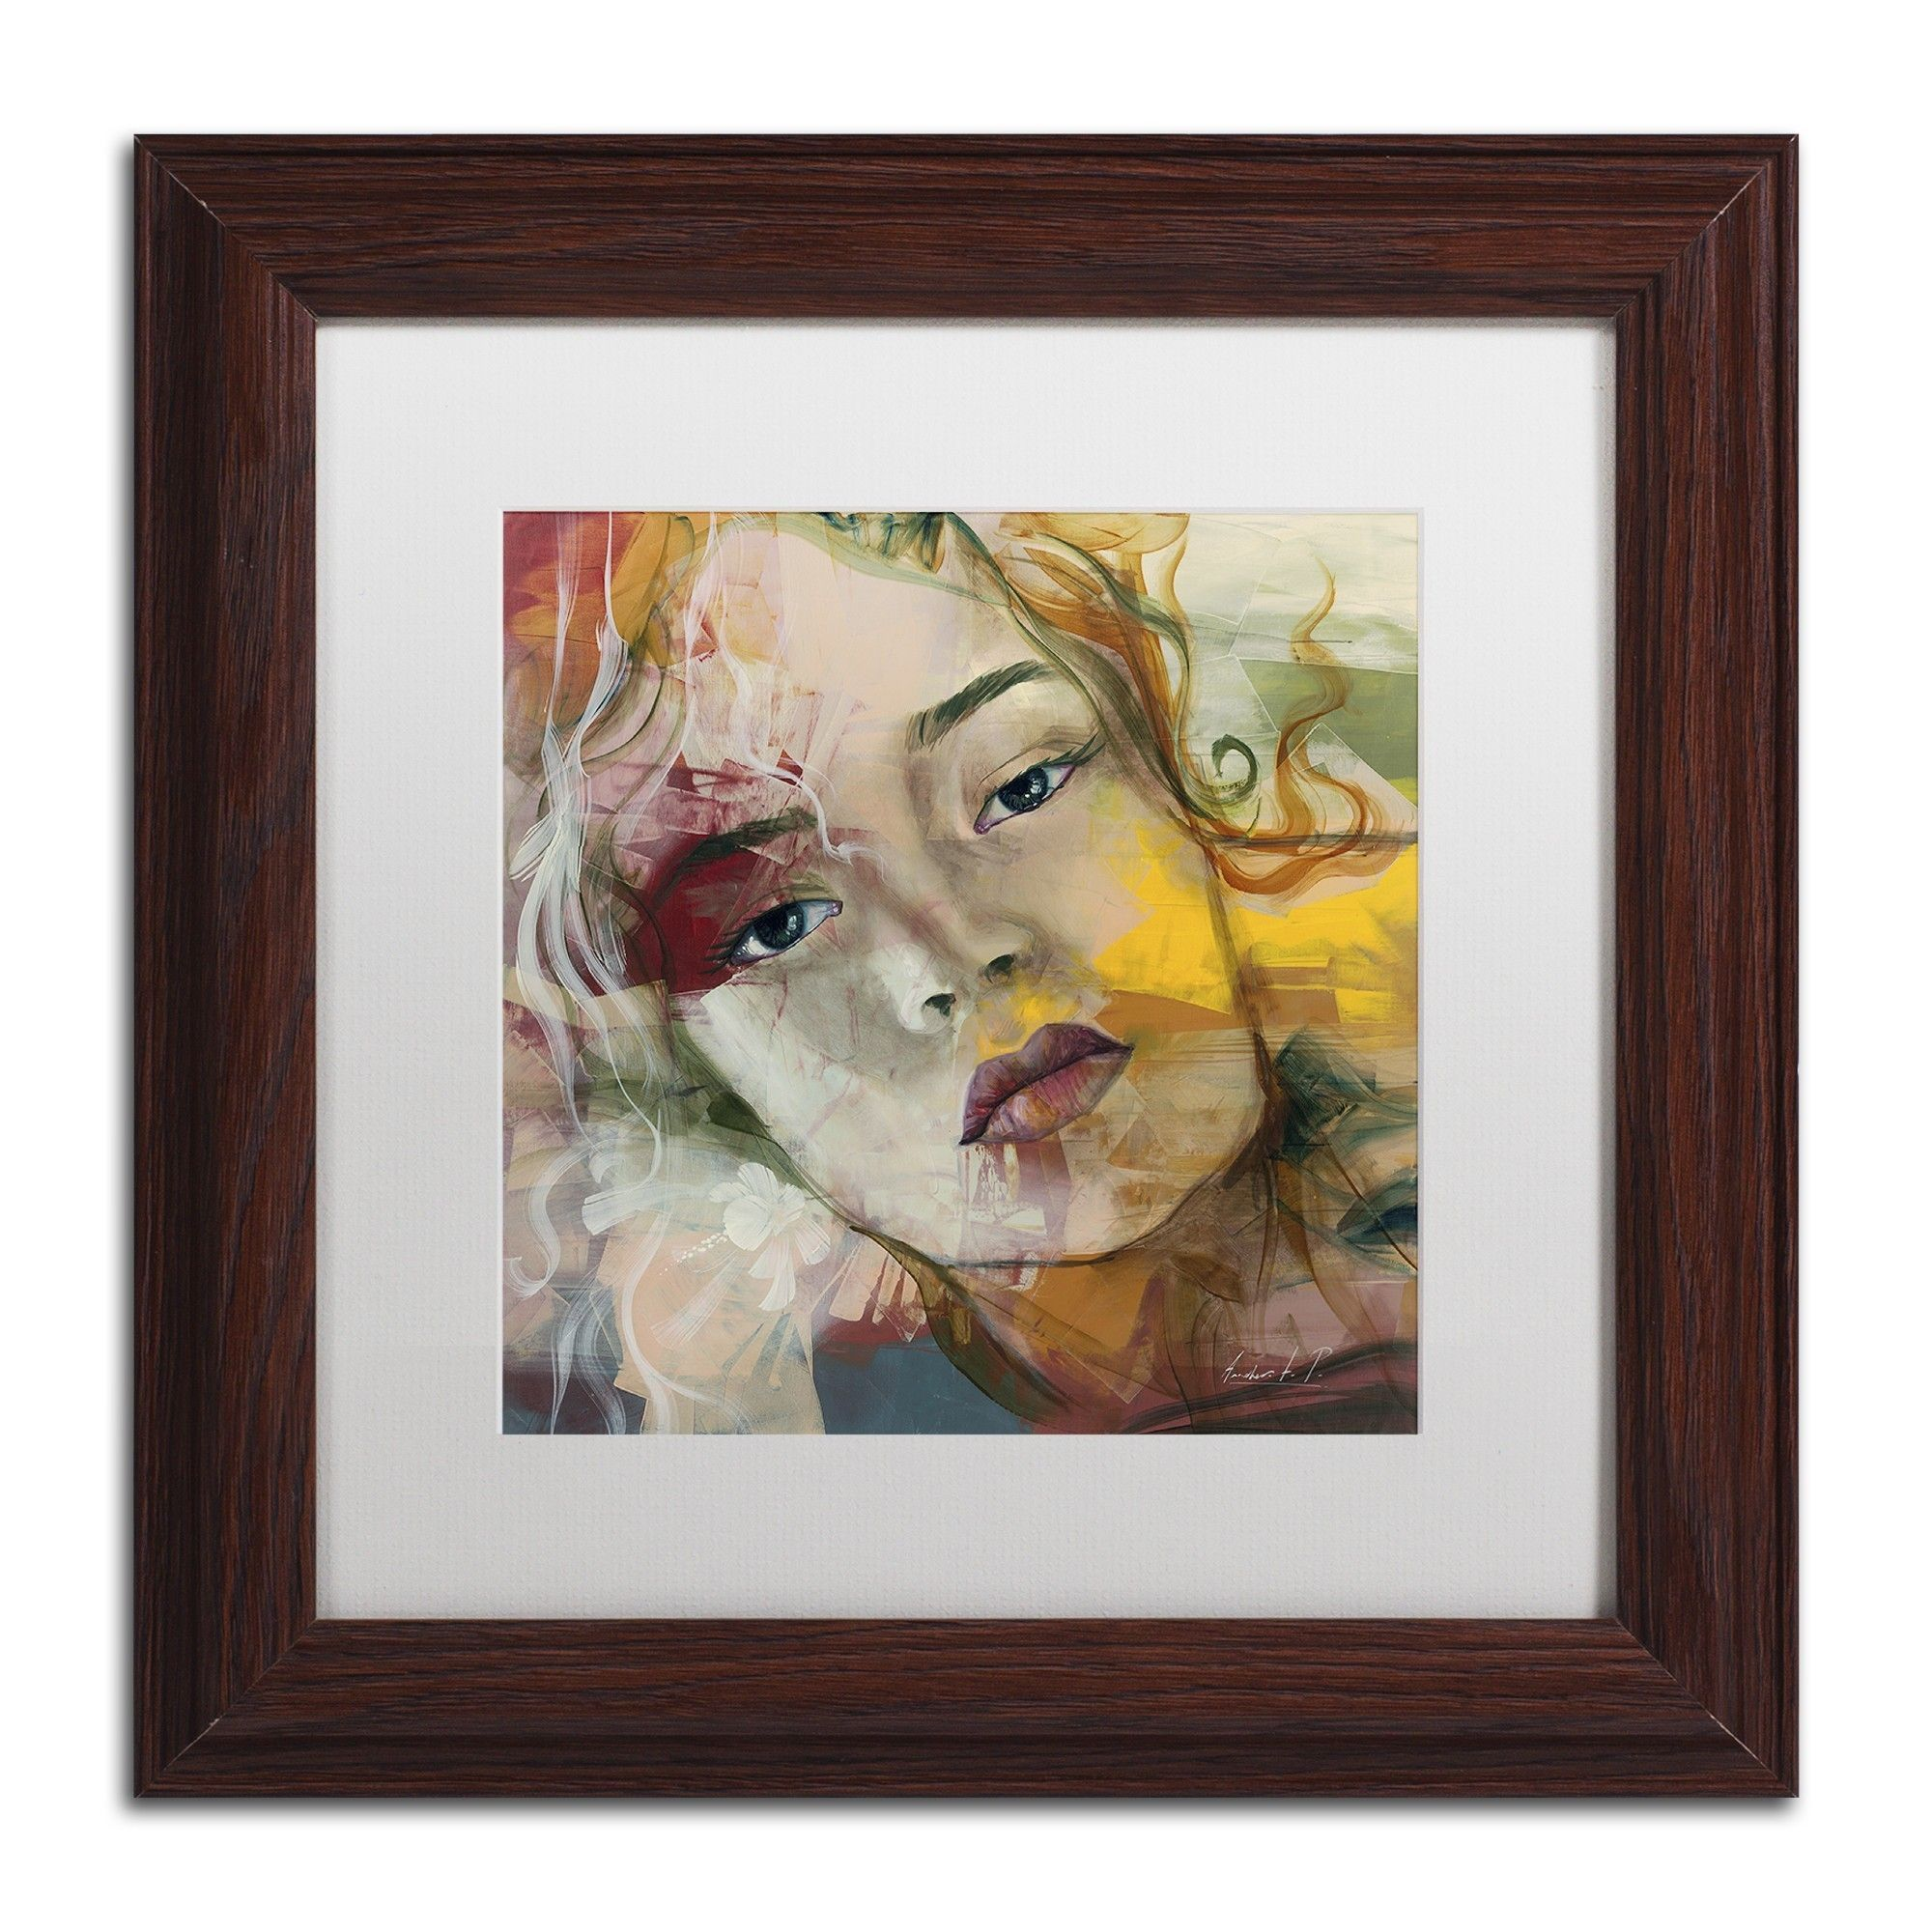 Te Recuerdo by Andrea Matted Framed Painting Print